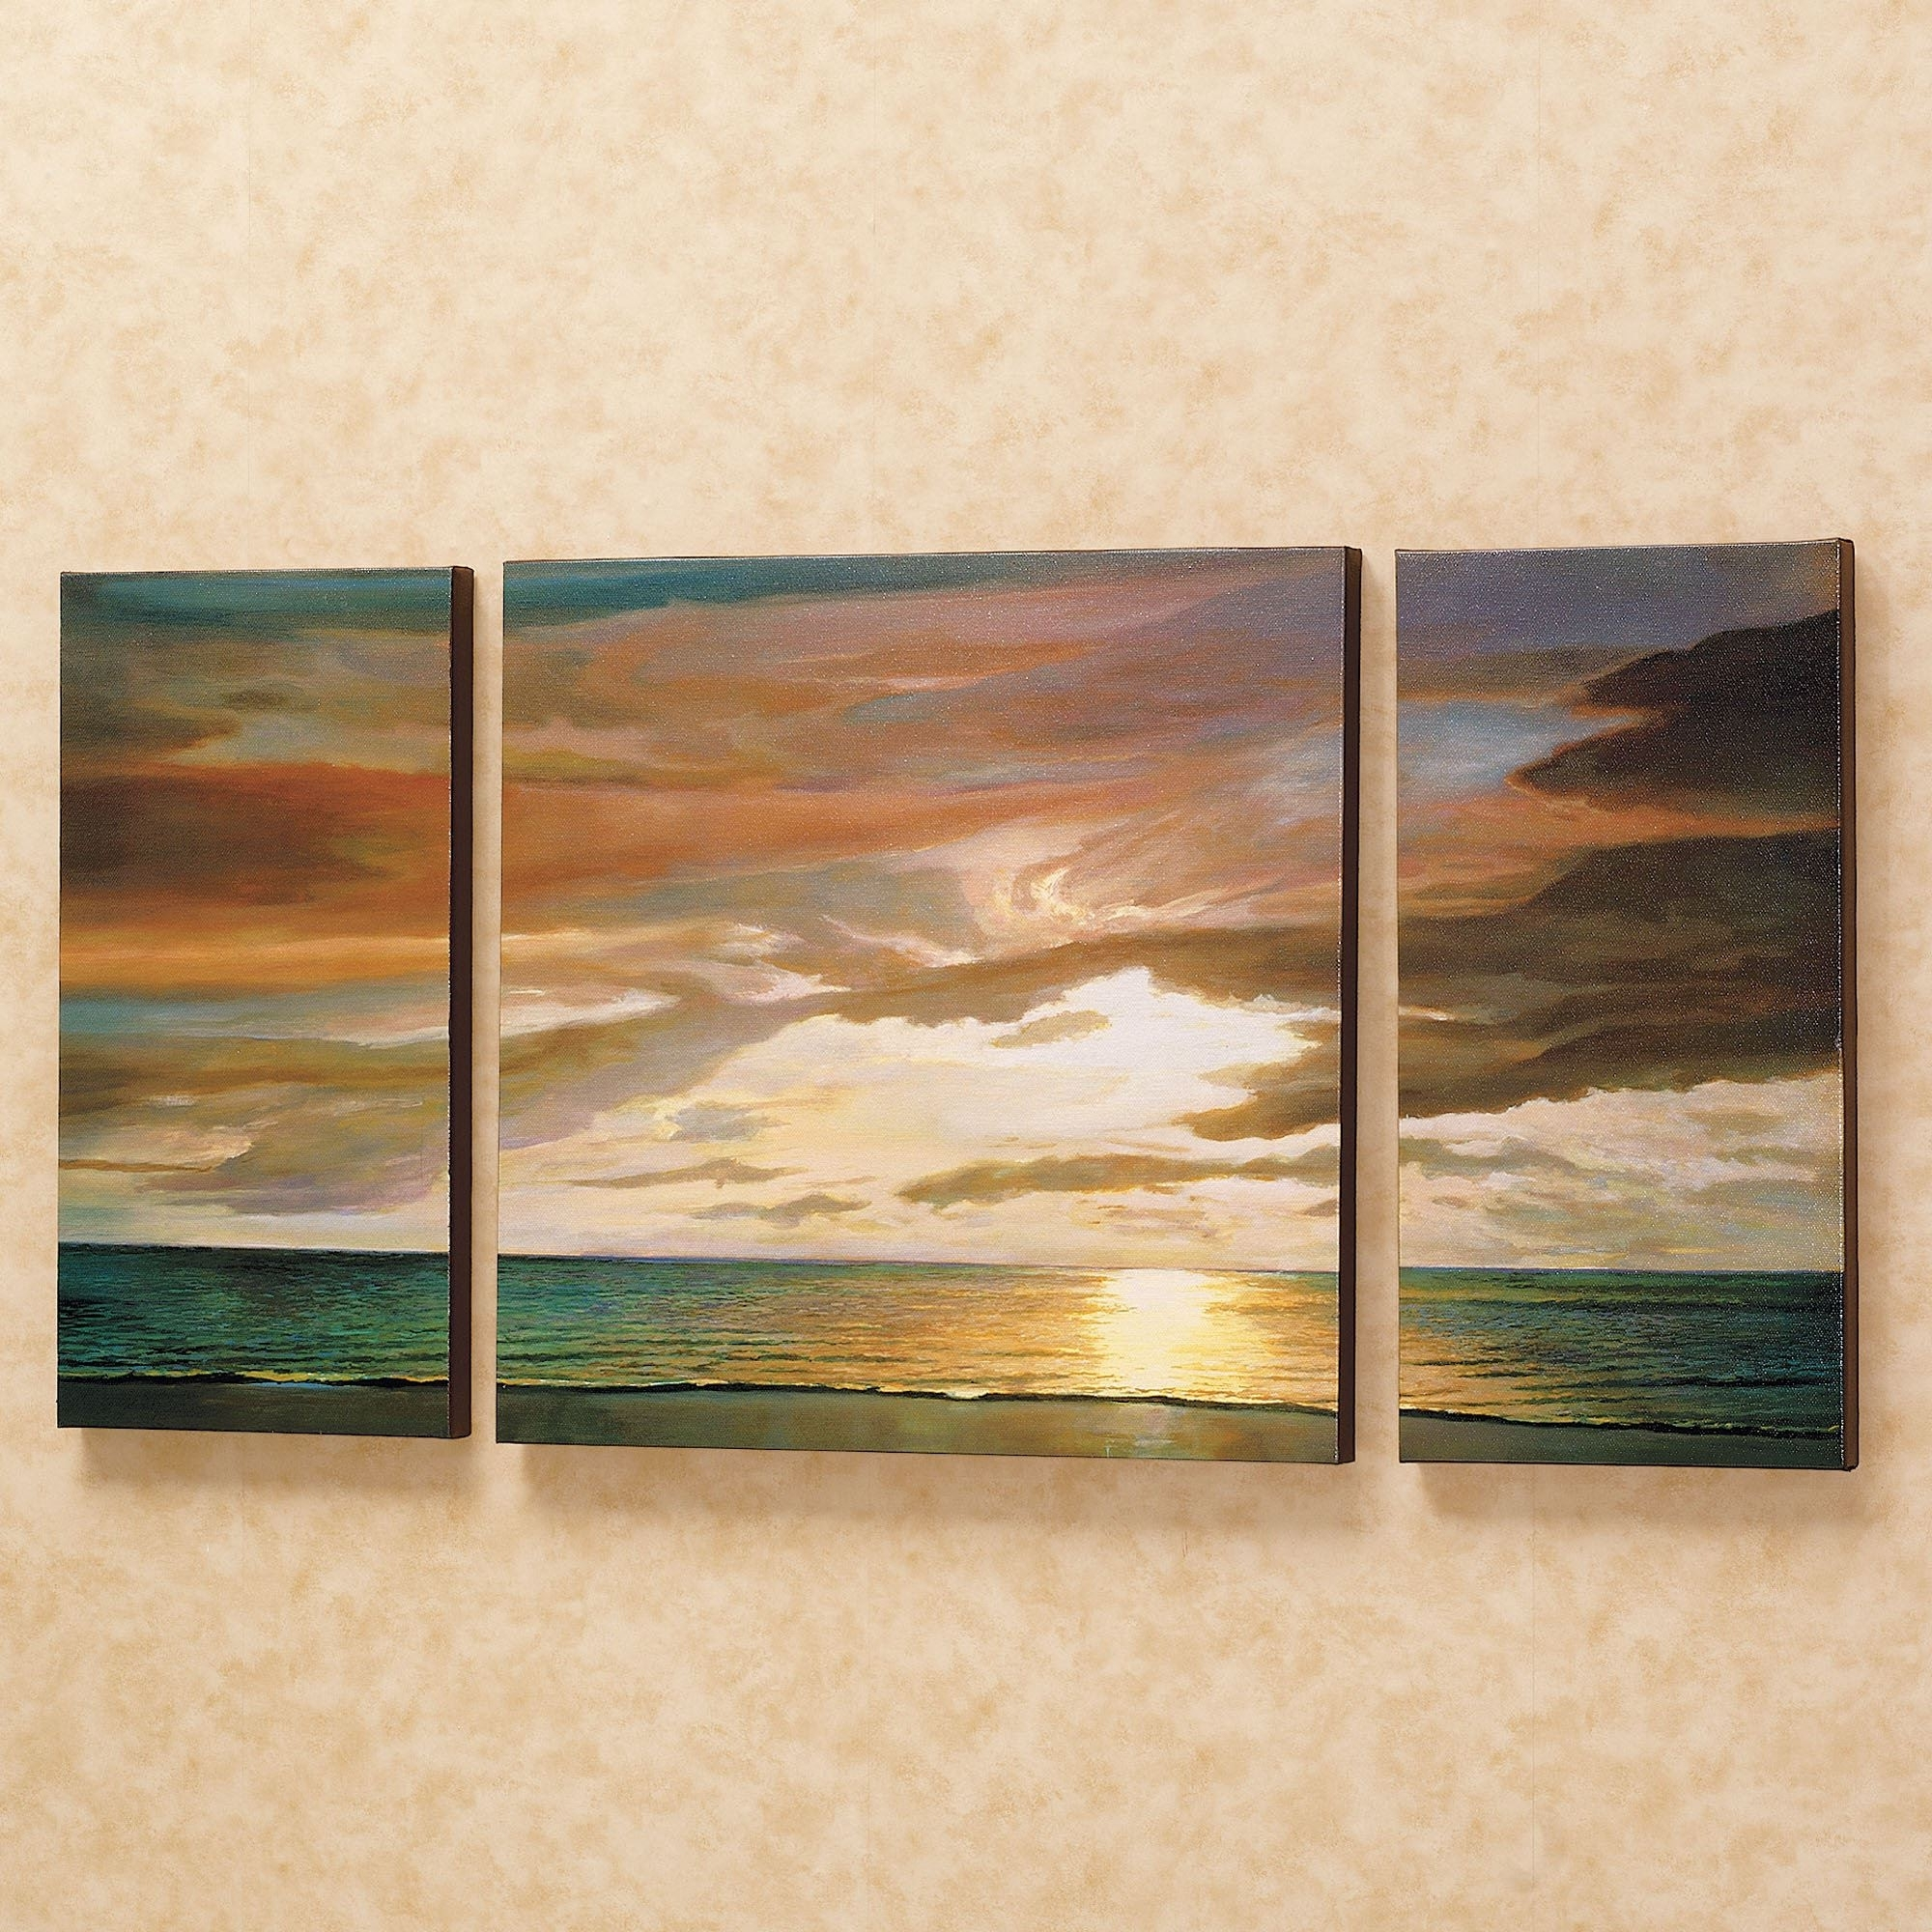 Quiet Horizons Canvas Triptych Art Set Throughout Favorite Triptych Art For Sale (View 7 of 15)